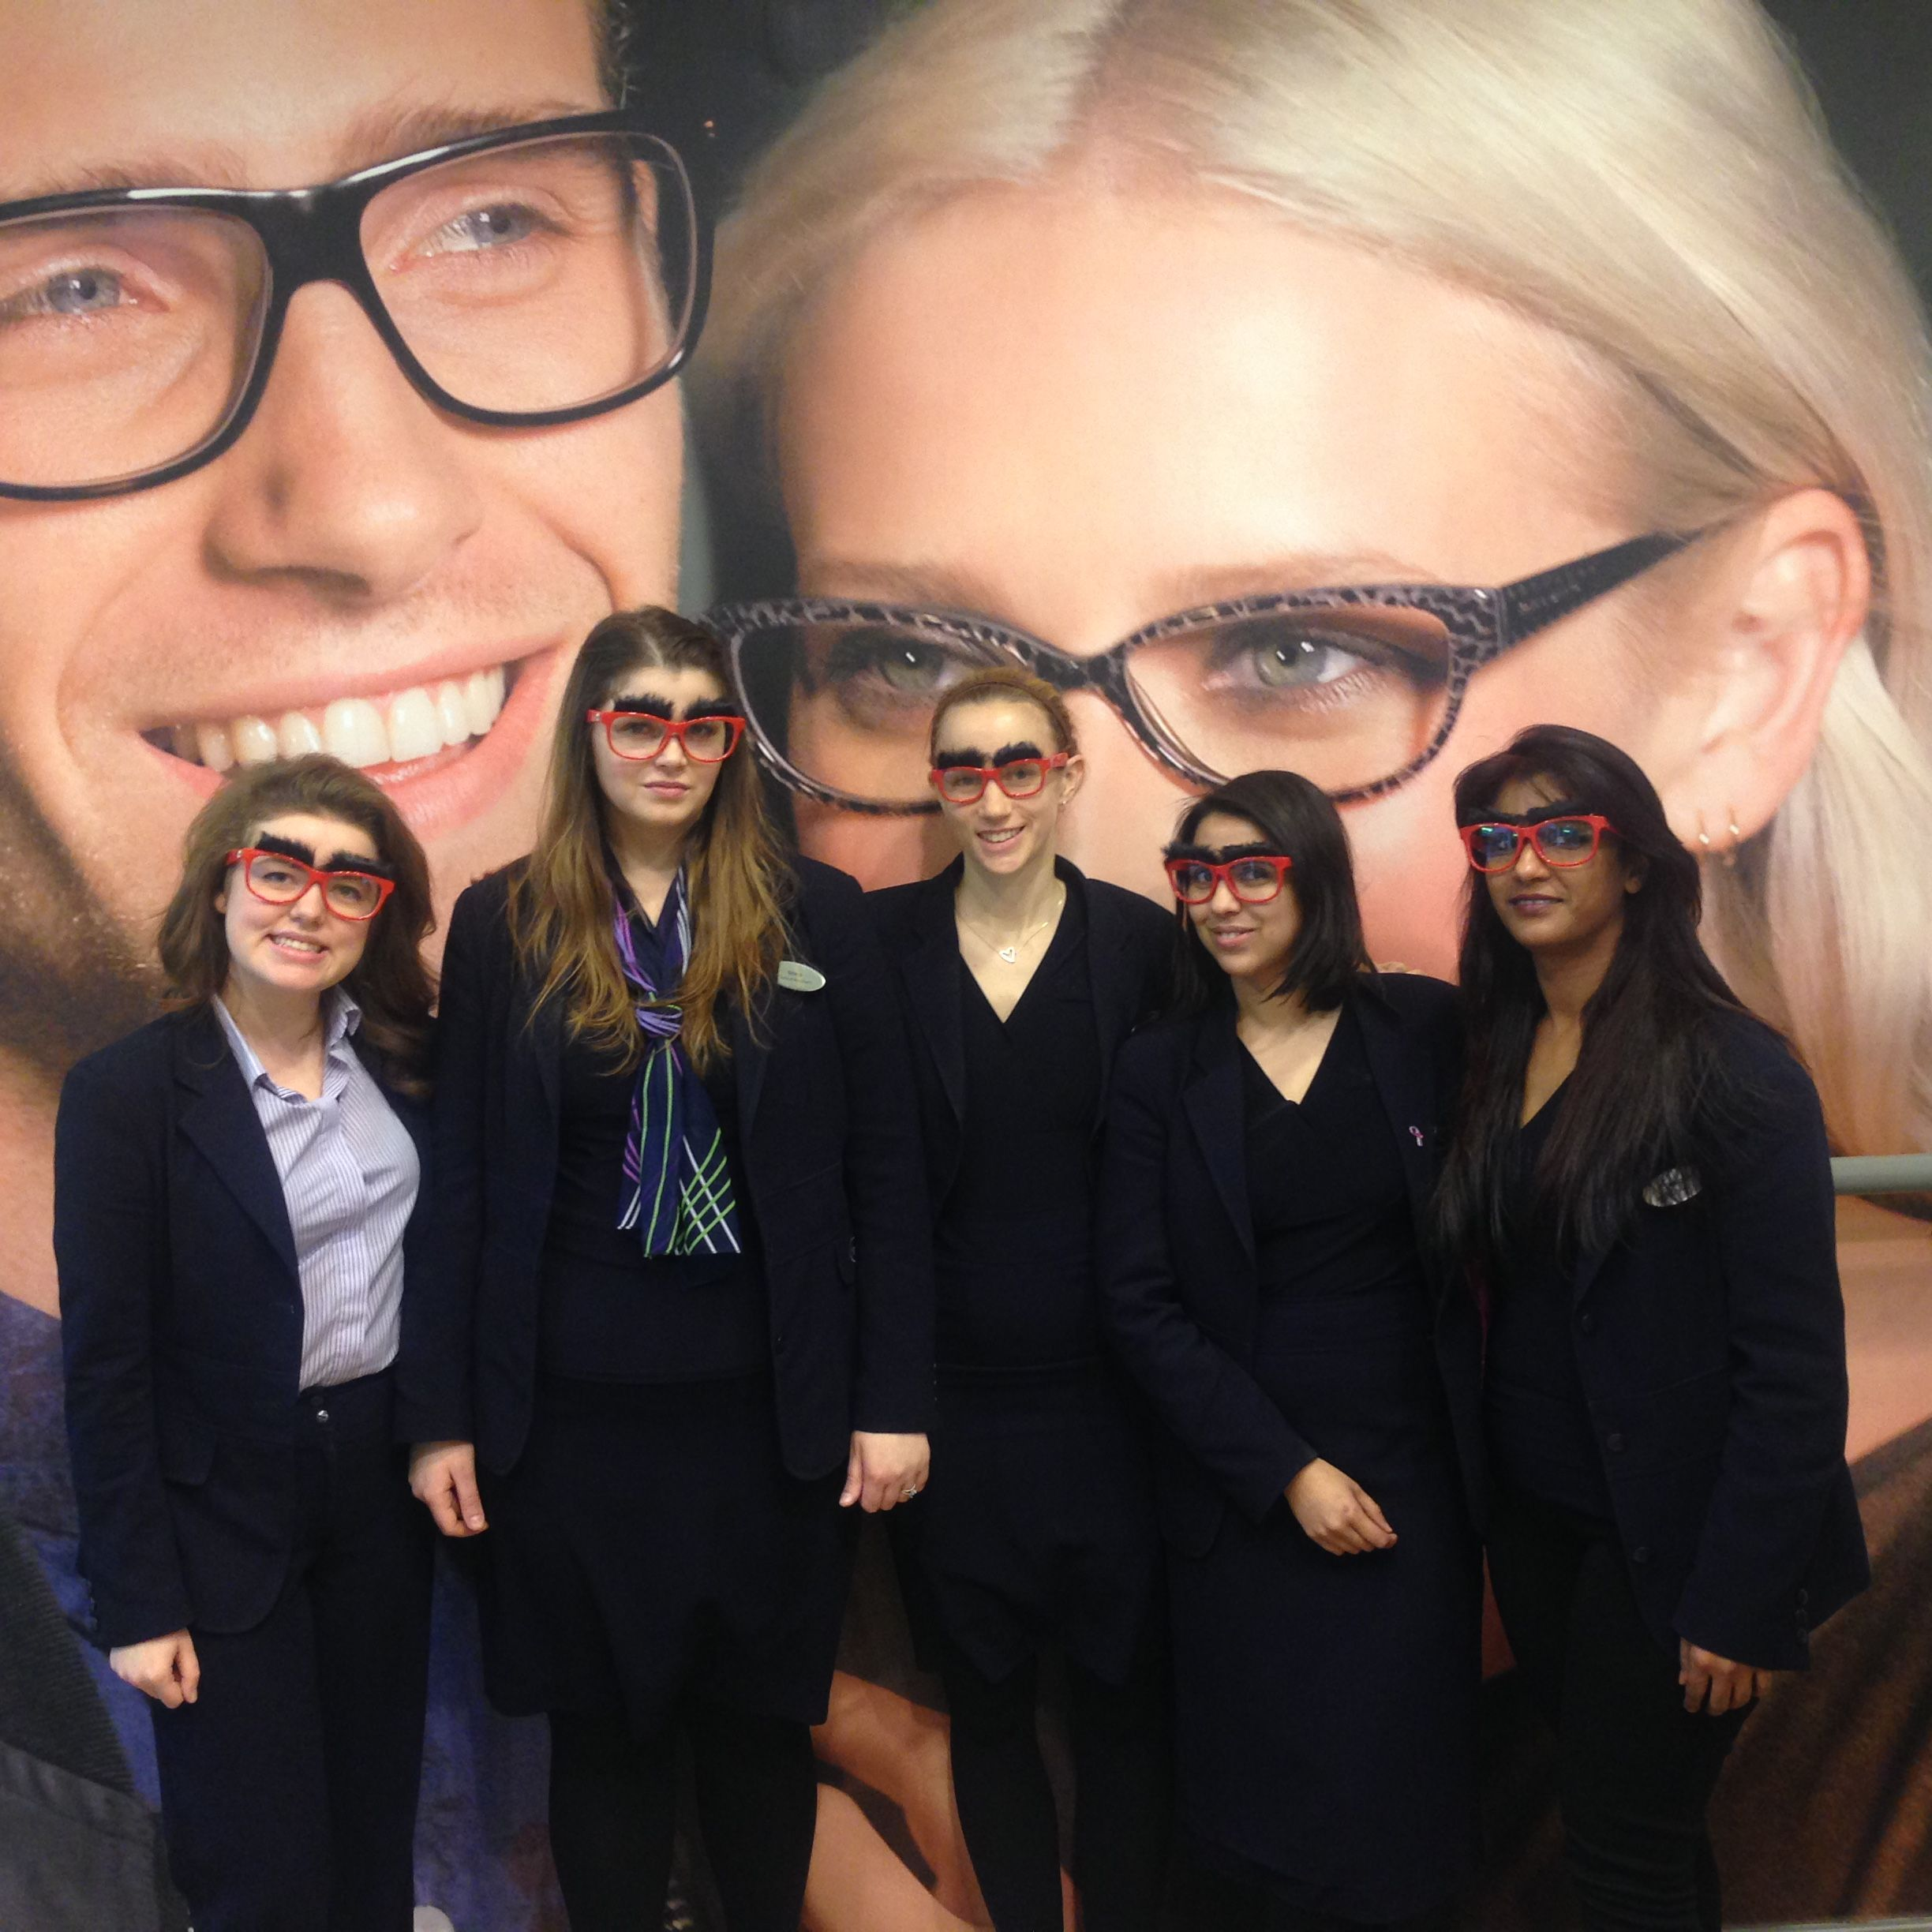 Specsavers London Wall getting in the fundraising spirit